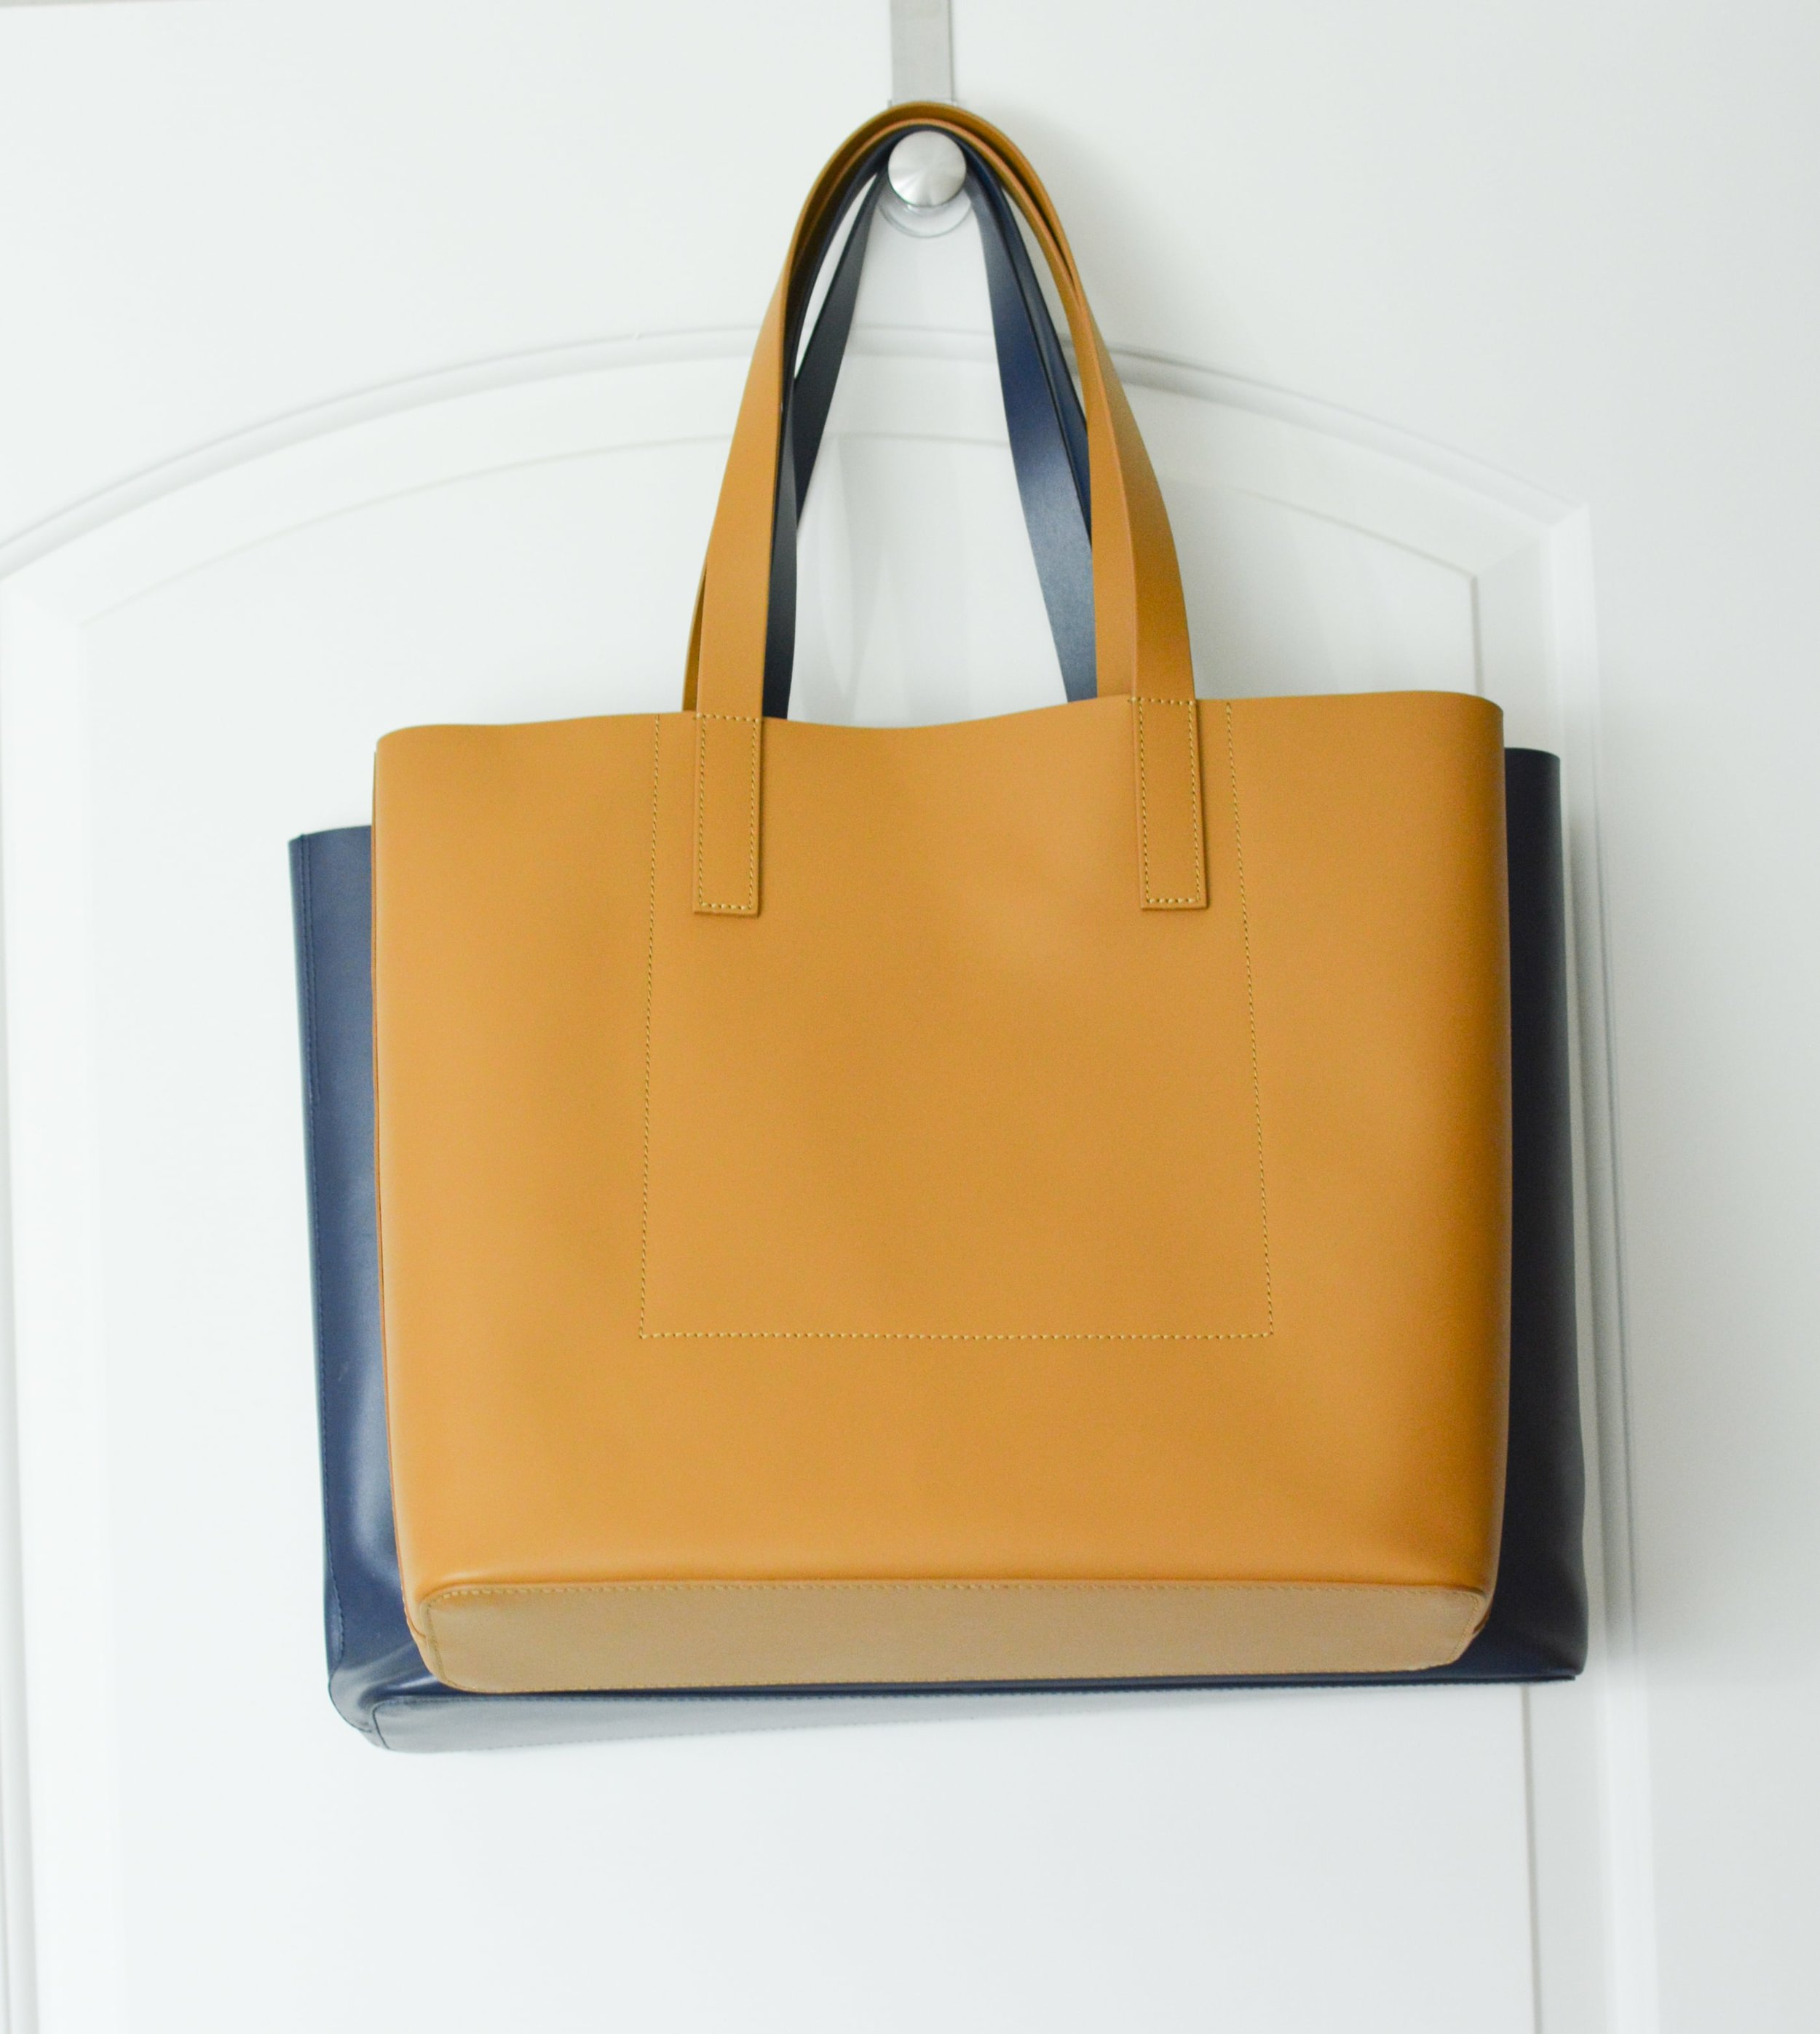 Everlane Square Market Tote Review (2 of 2)-min.jpg